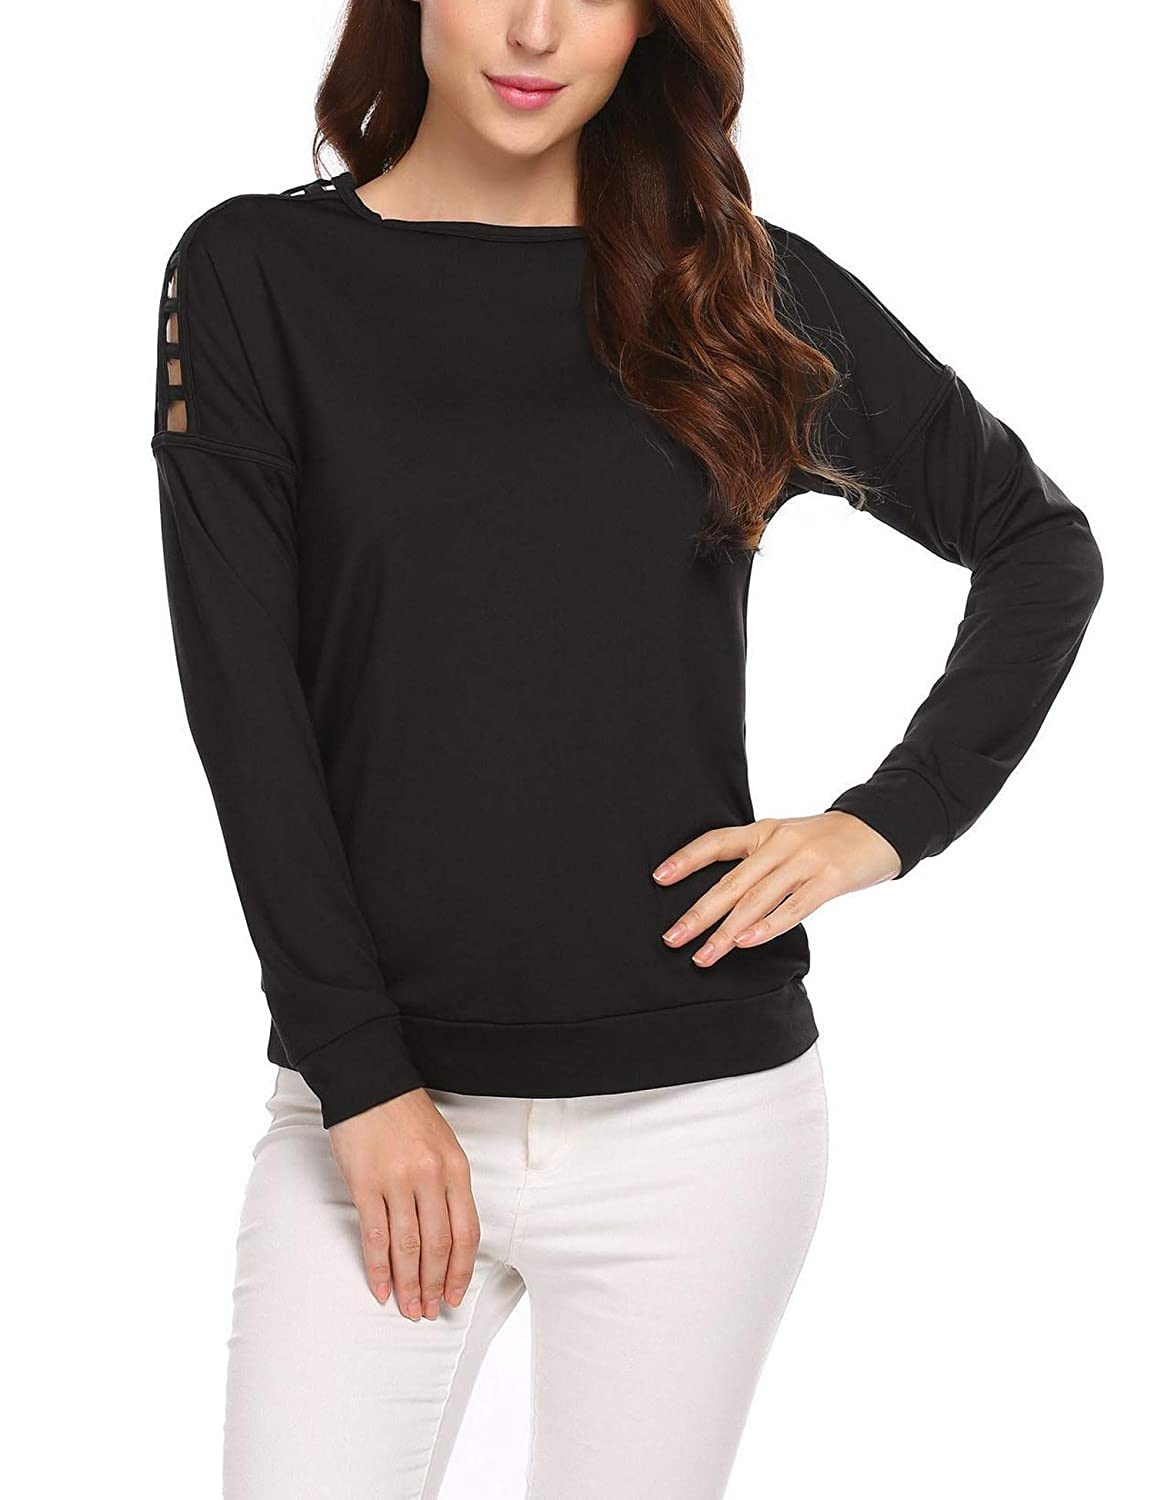 2black EASTHER Women's Cold Shoulder Blouse Long Sleeve Round Neck Causal Solid Cotton Tunic Tops